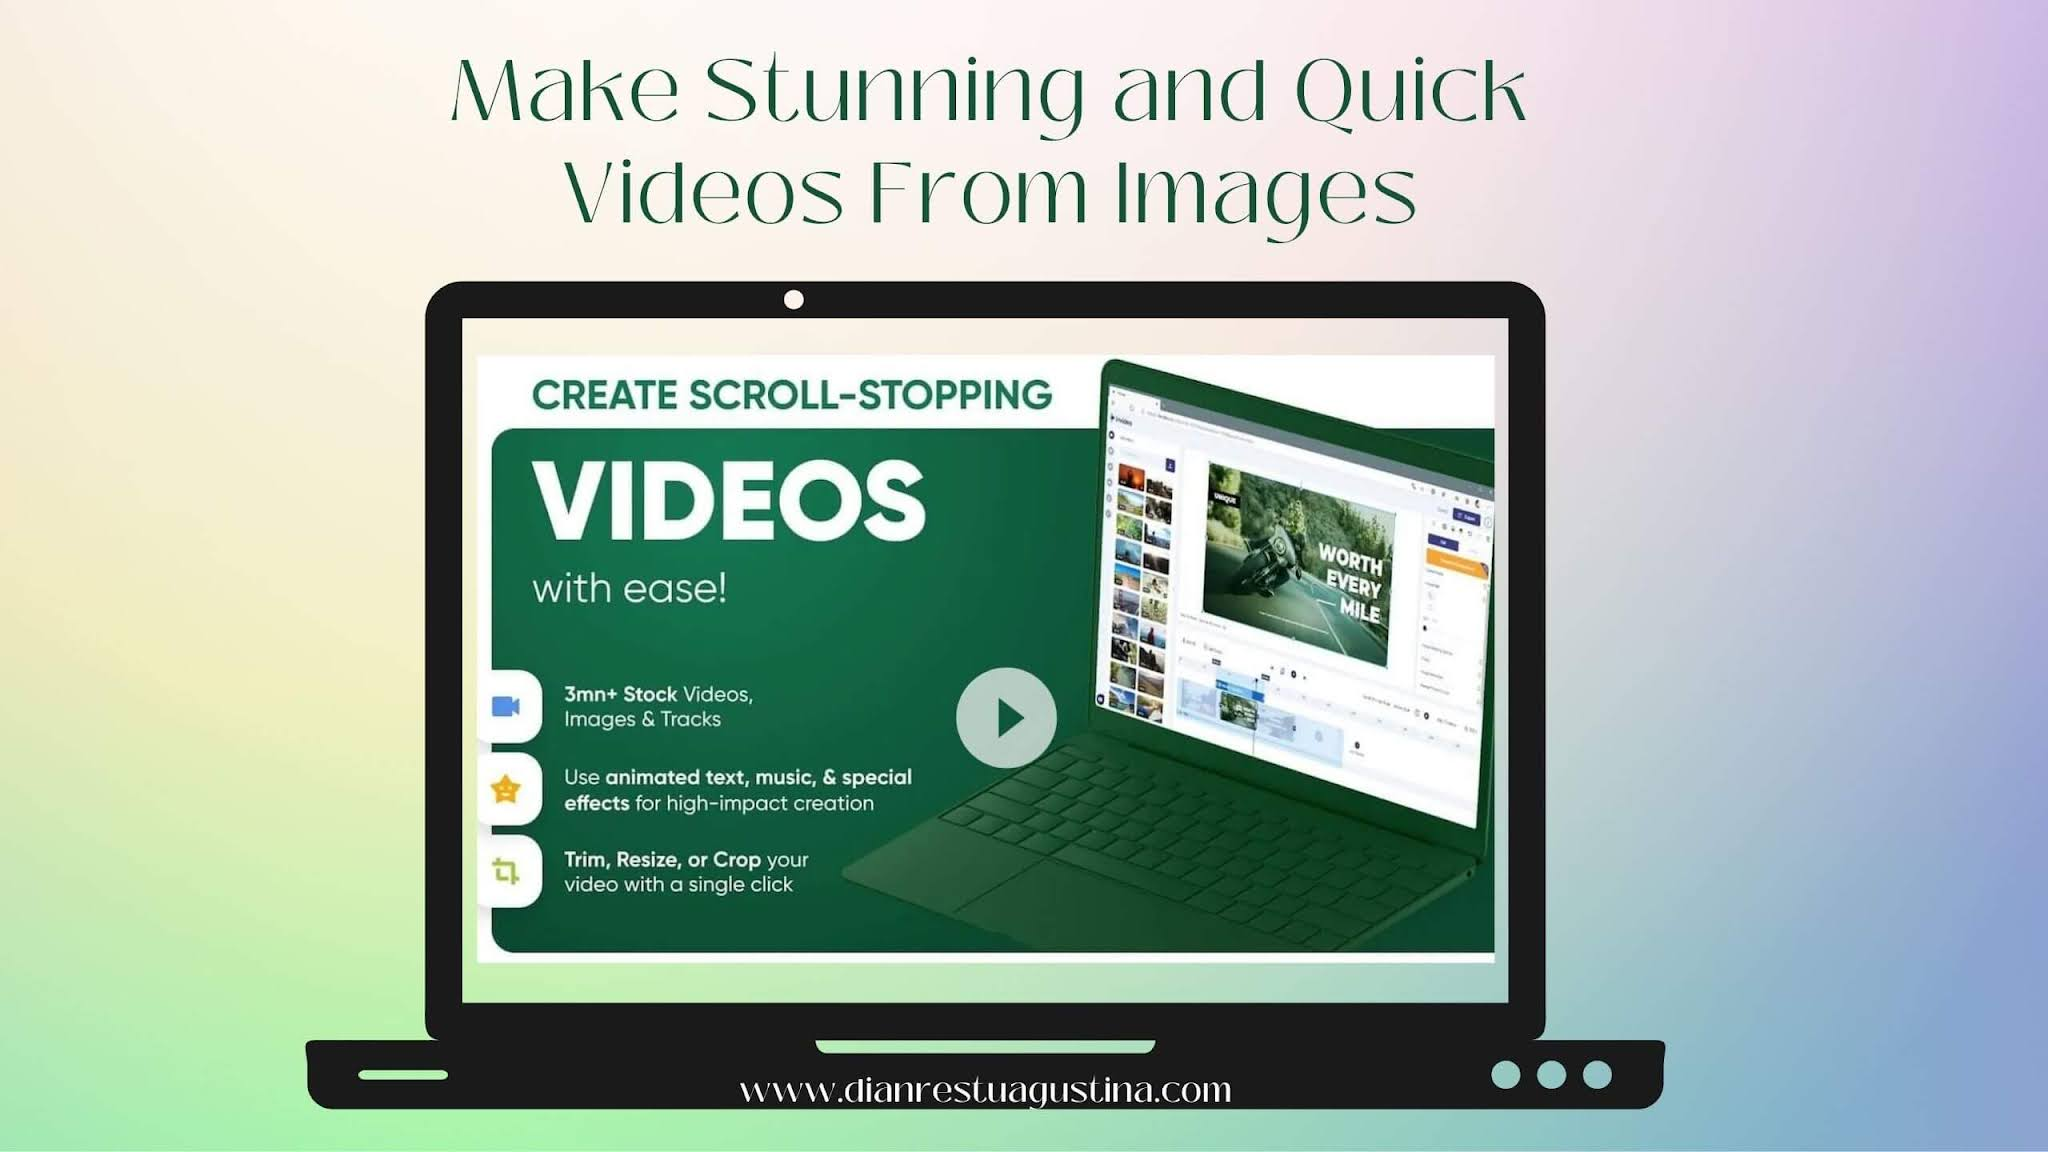 Make Stunning and Quick Videos from Images